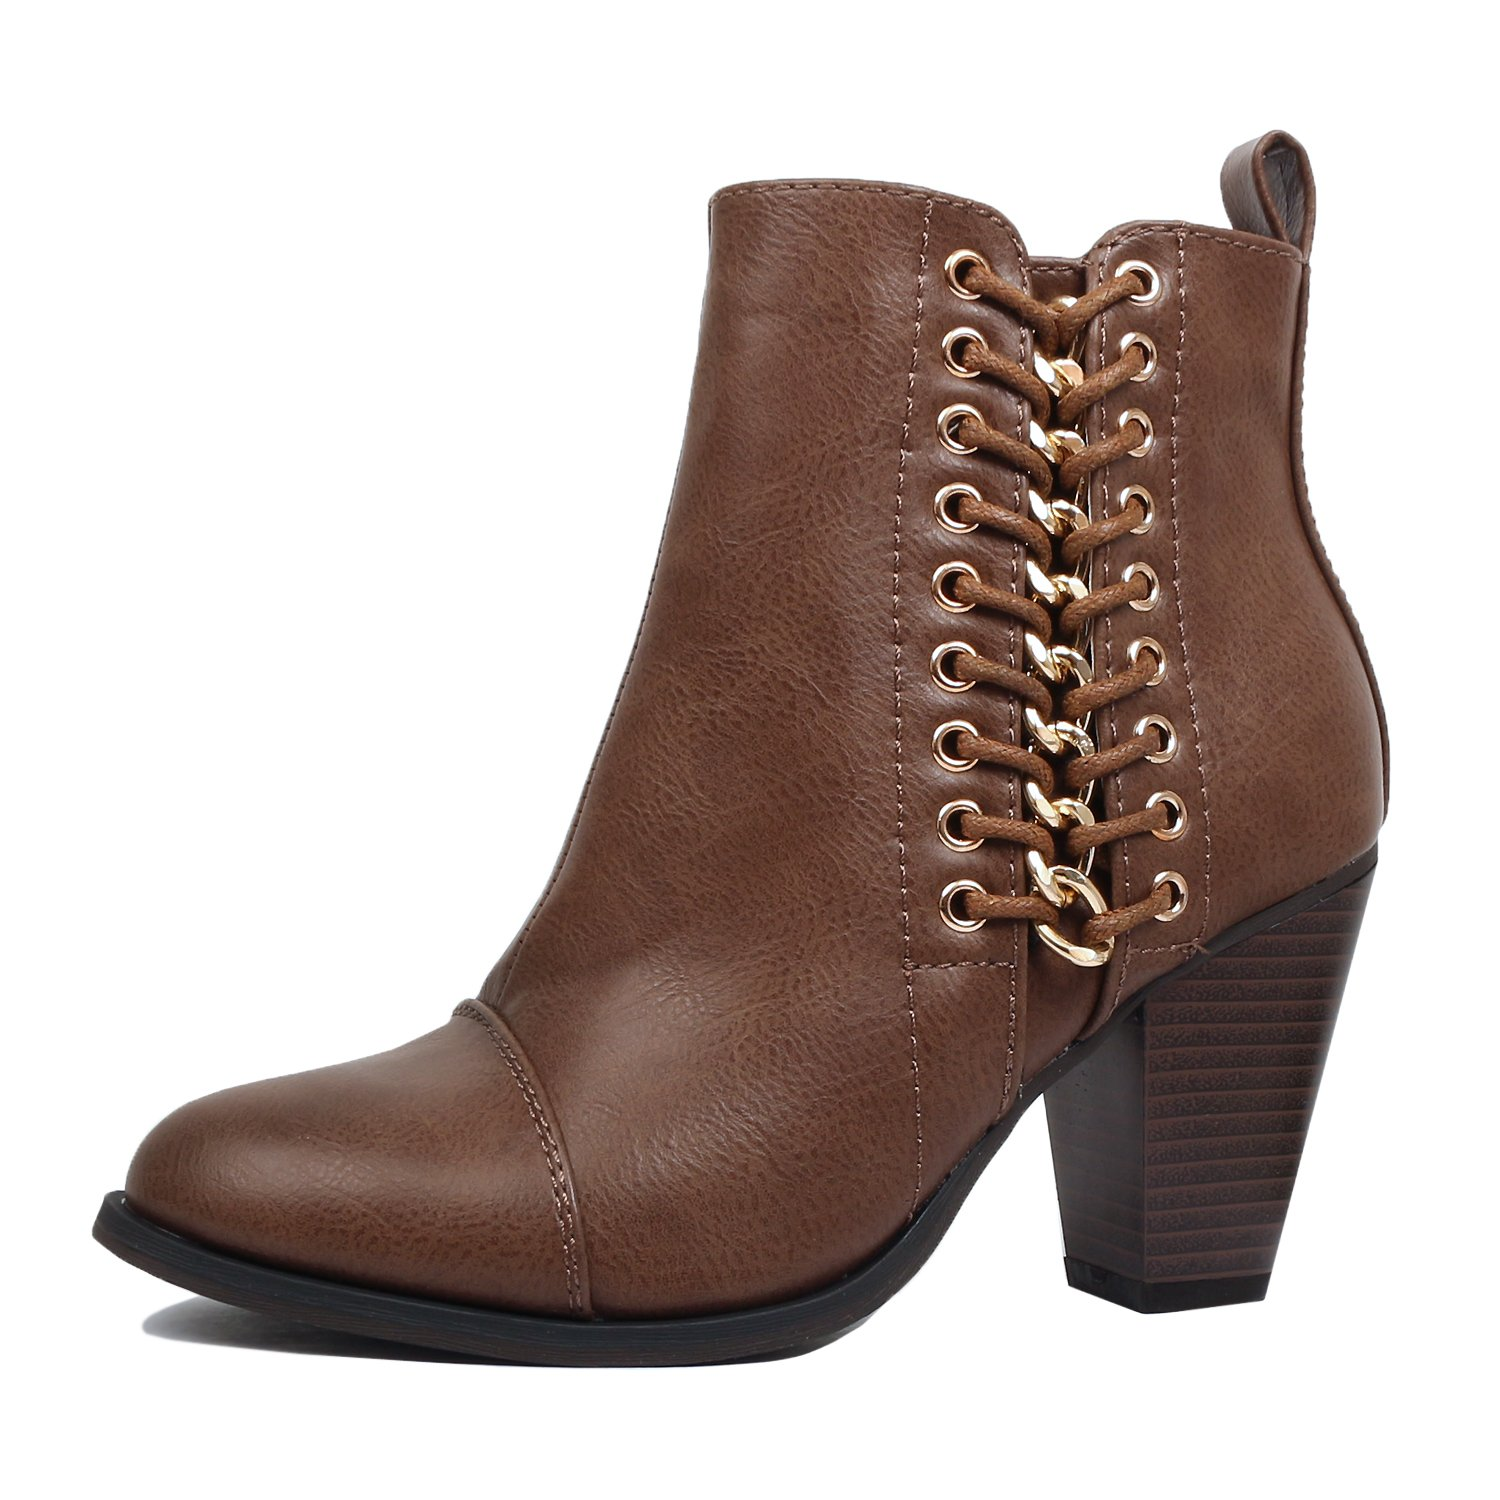 Guilty Heart | Womens Strappy Buckle Bootie | Chunky Block Heel Ankle Boots (7.5 B(M) US, Brownv2 Pu)